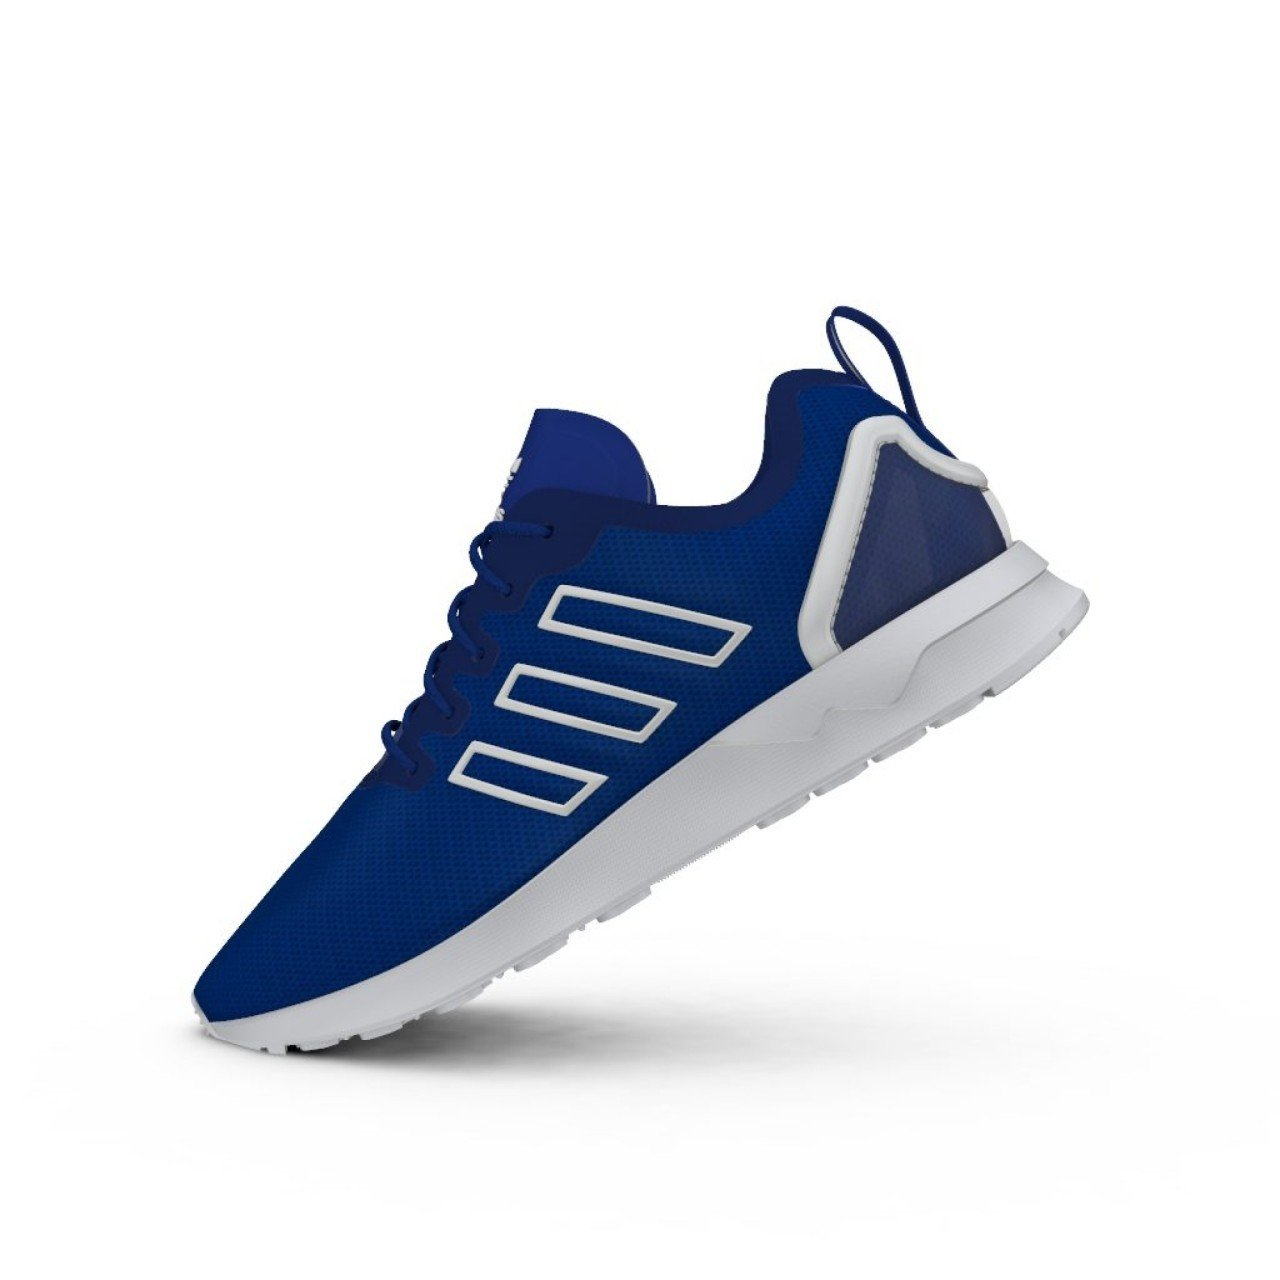 adidas ZX Flux ADV Shoes Bold Blue 5.5: Amazon.co.uk